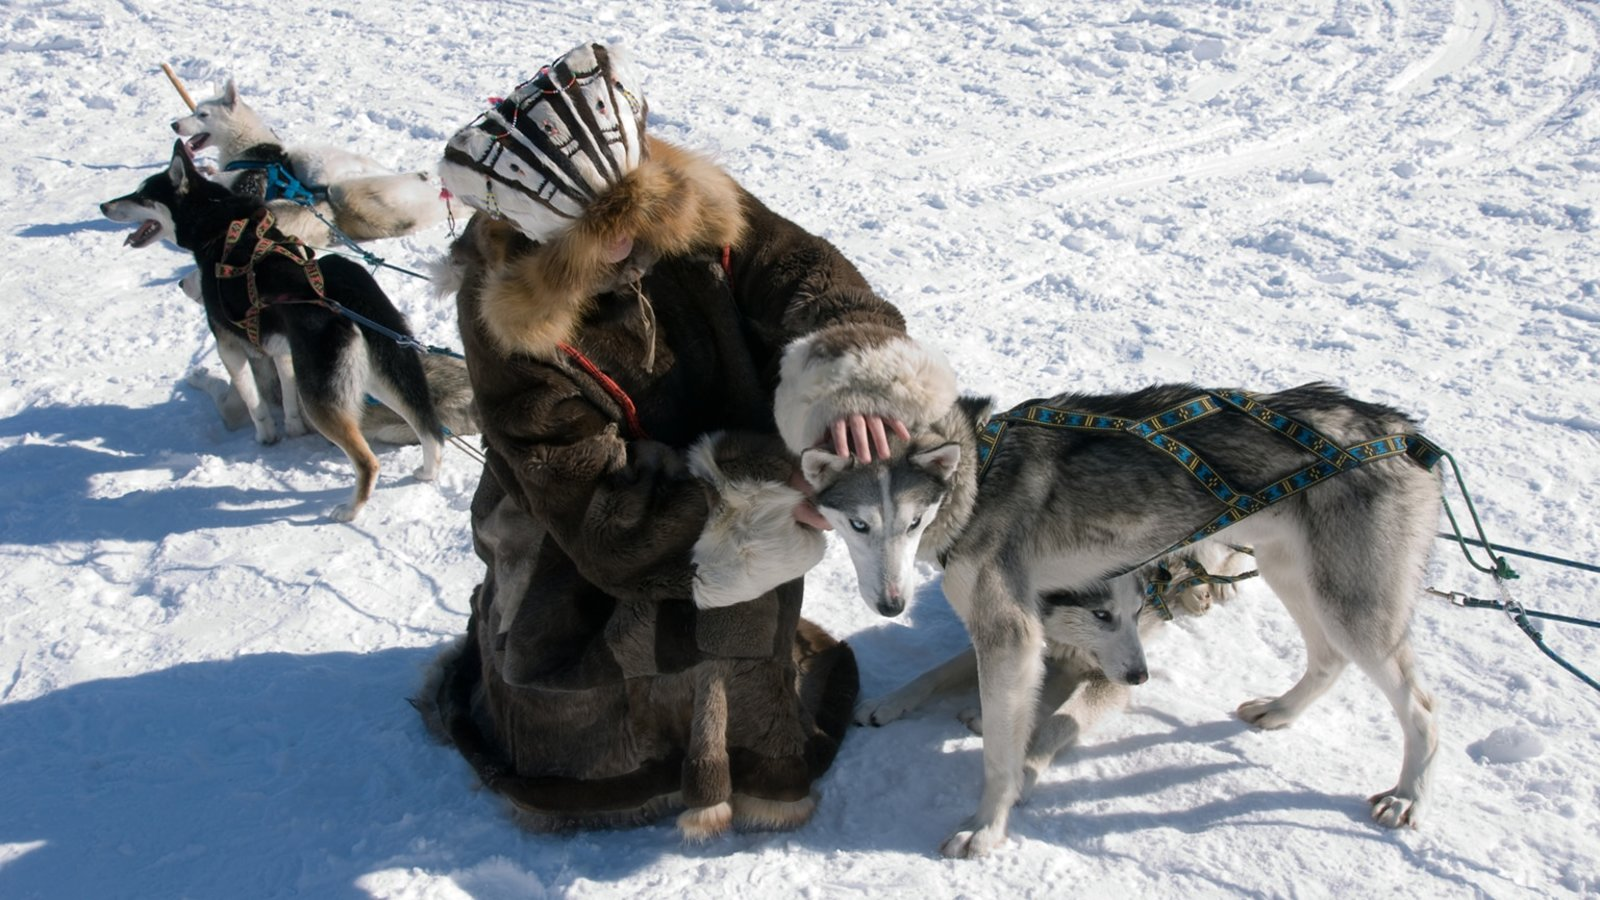 Inuit and Northern Forest Mythology